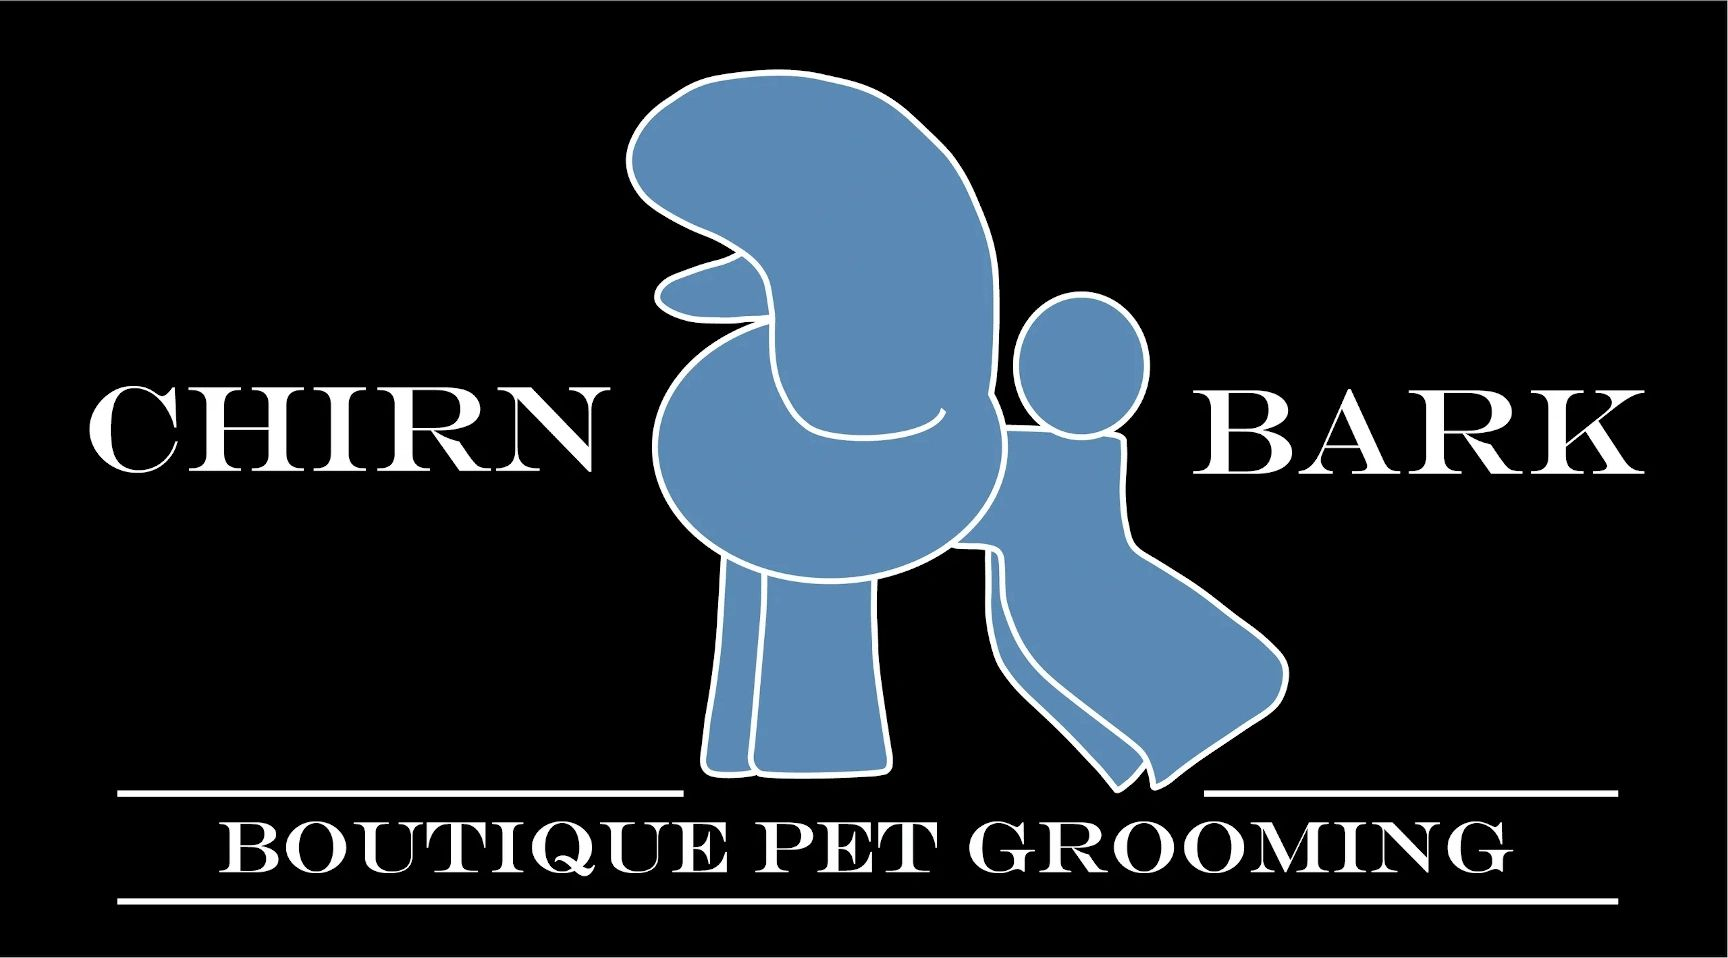 Chirn Bark Boutique Pet Grooming